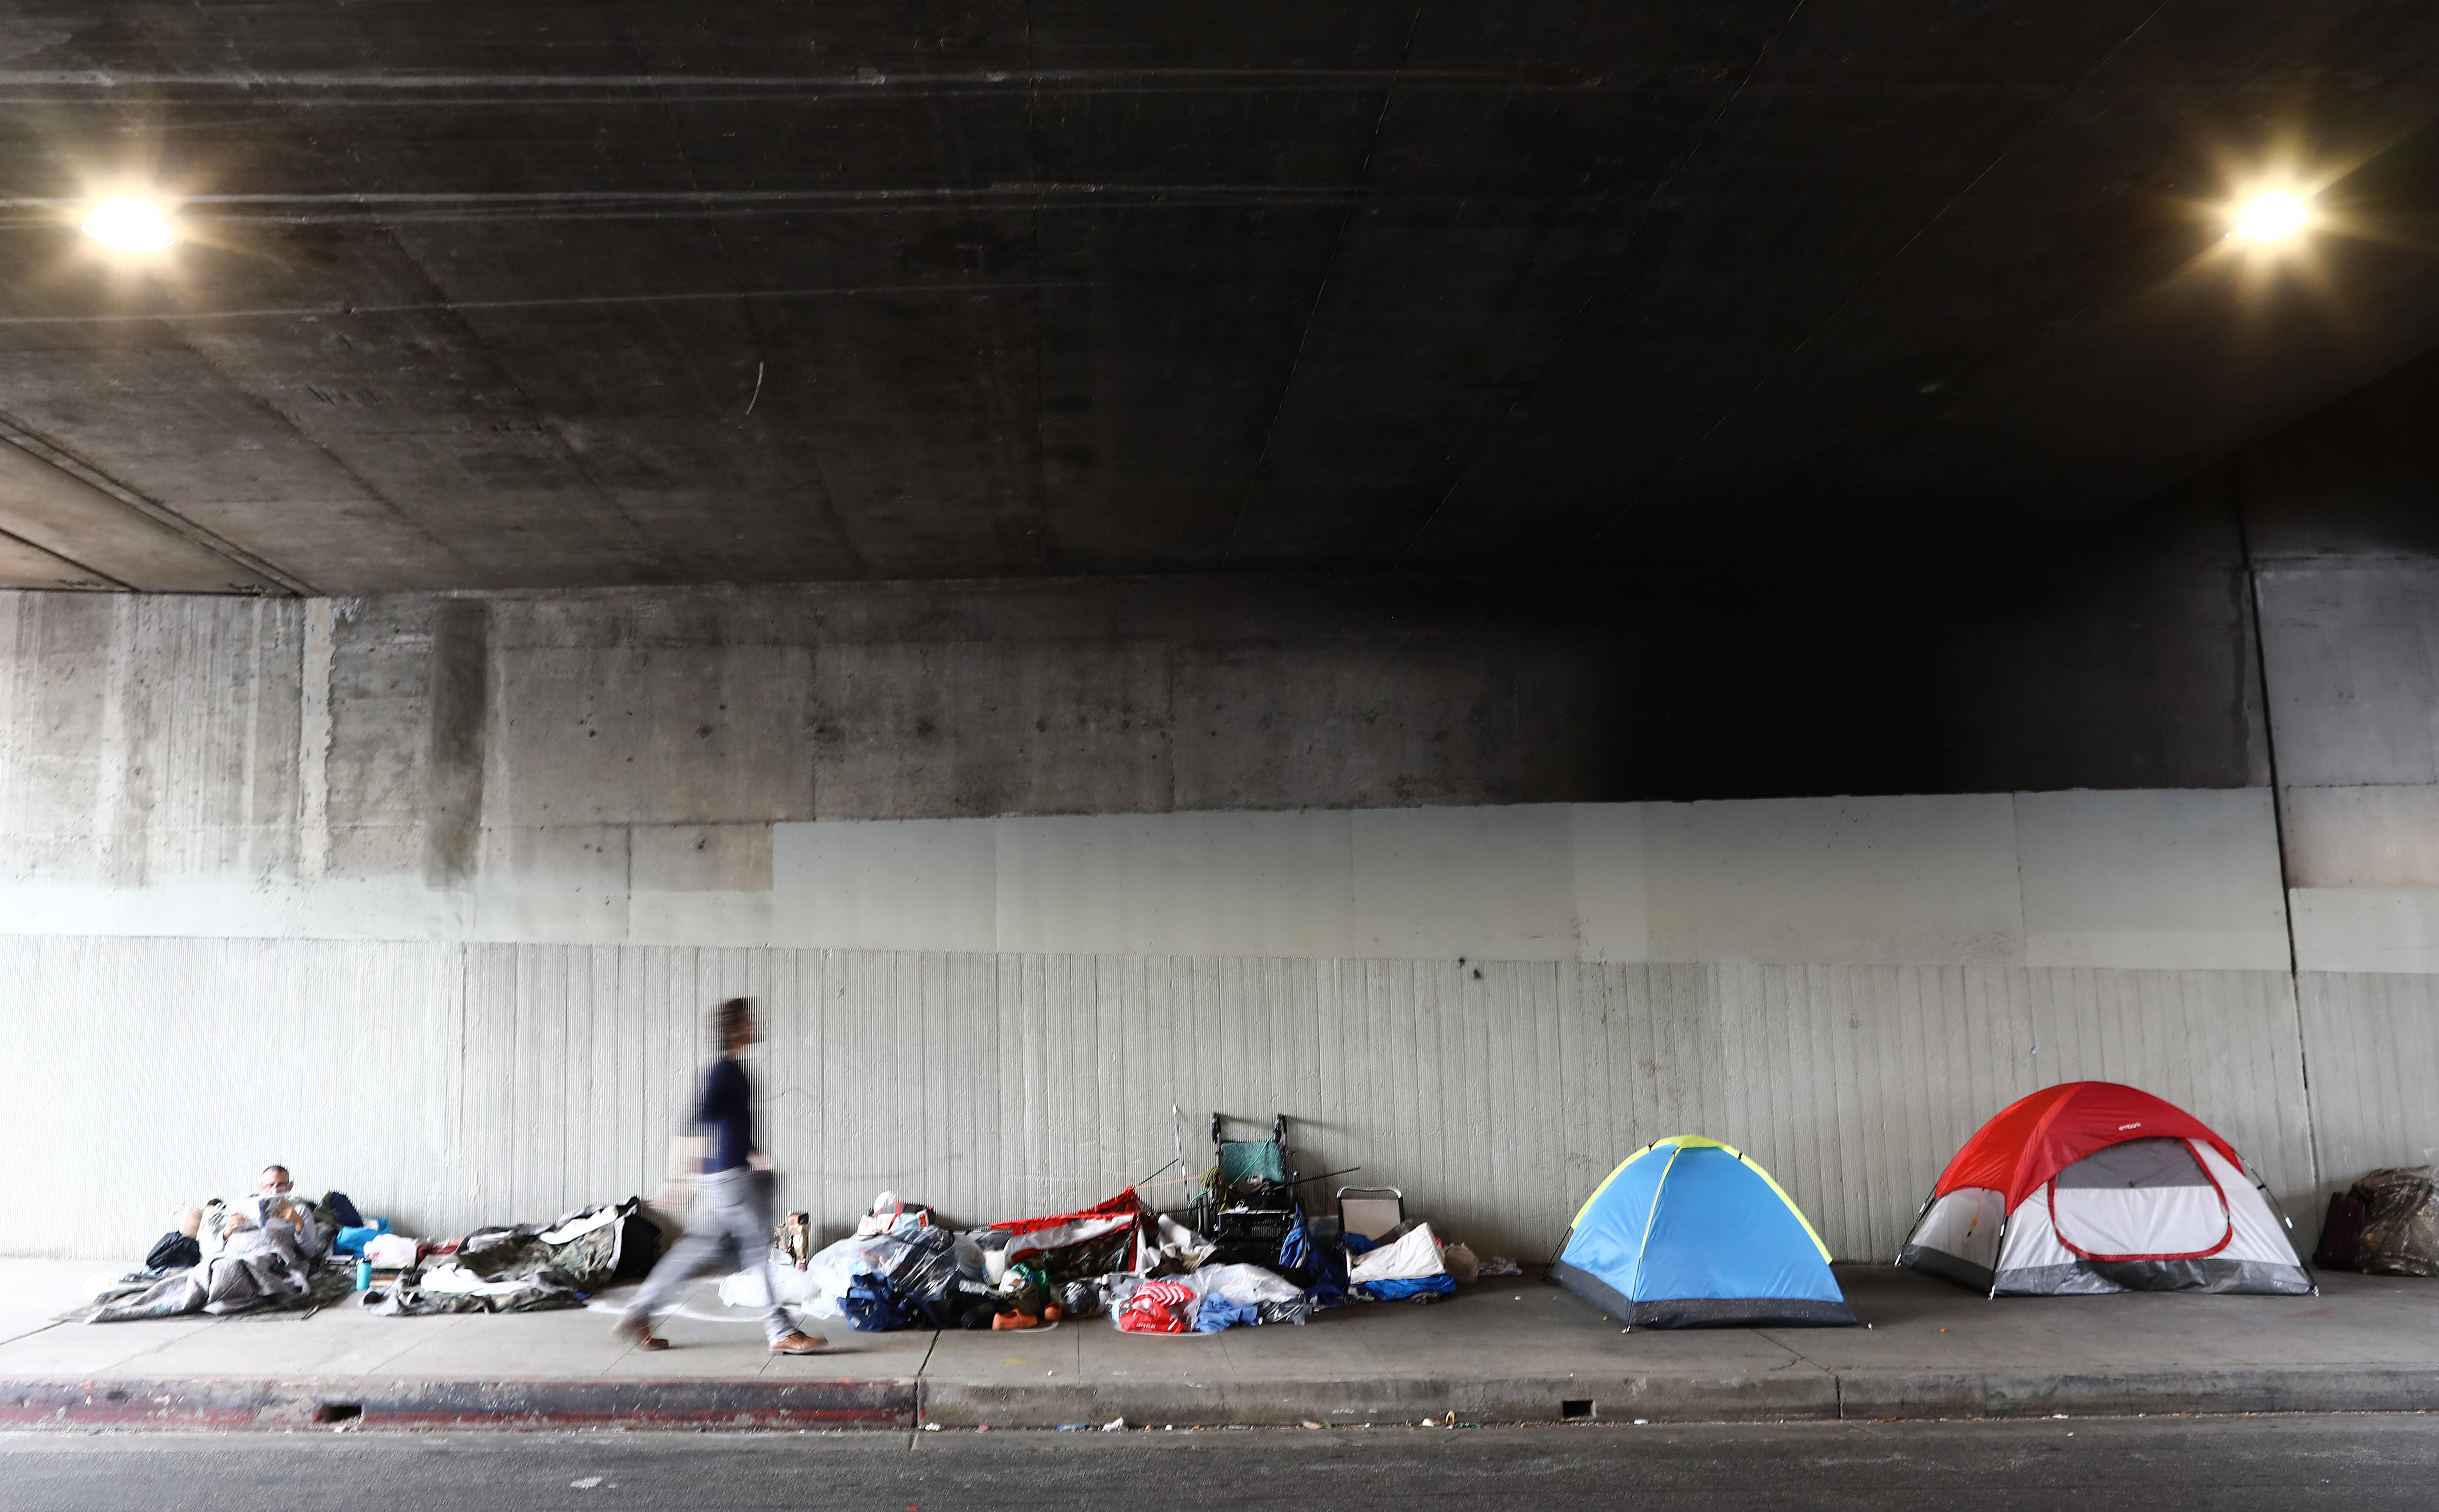 A man walks past a homeless encampment beneath an overpass in Los Angeles, California. (Photo by Mario Tama/Getty Images)